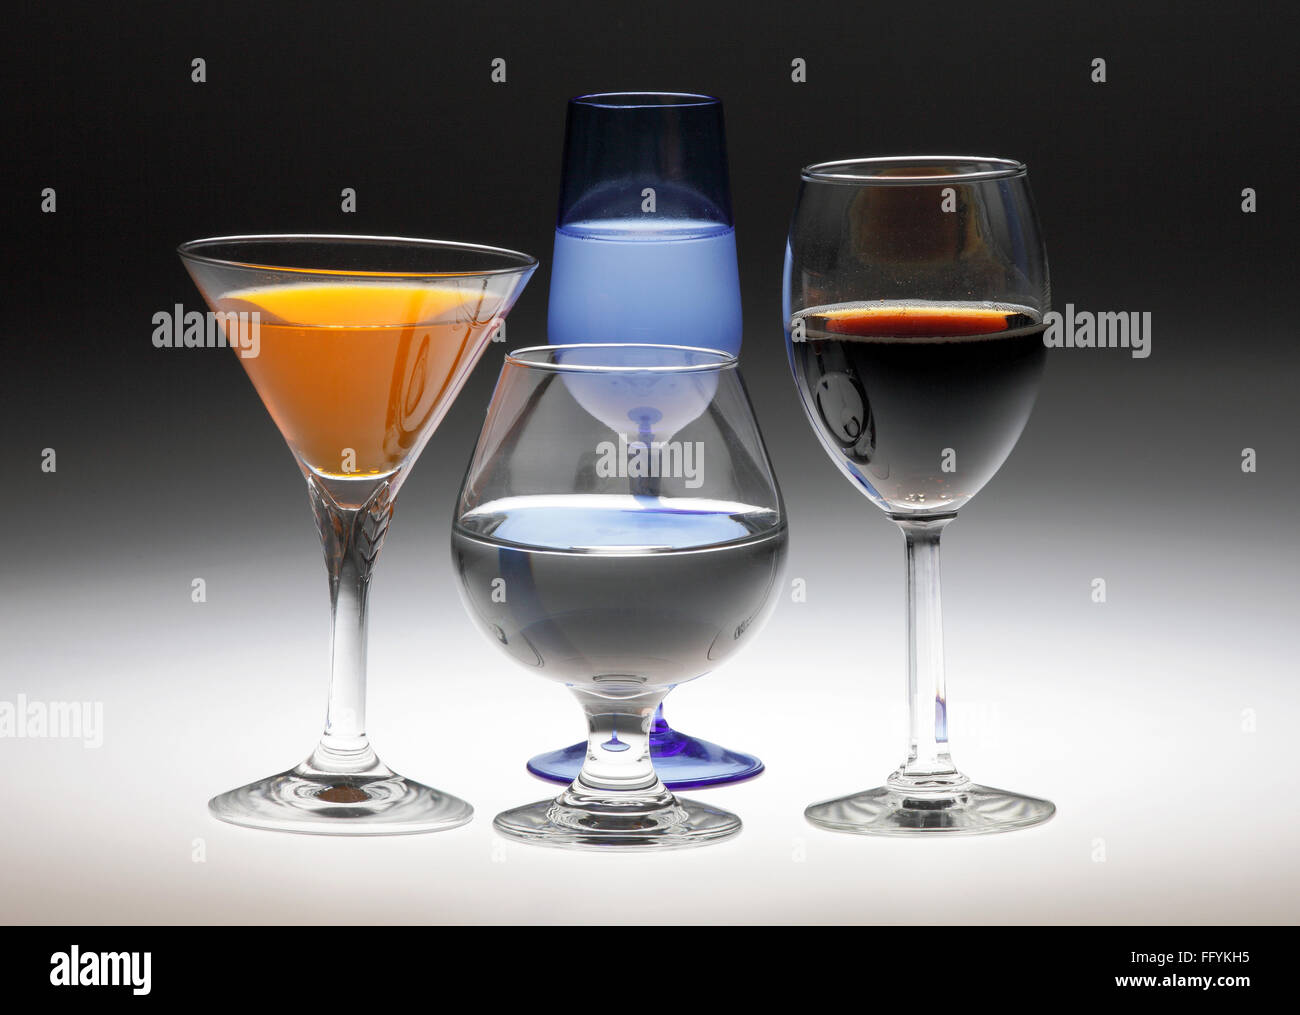 Drinking Glasses Glassware India - Stock Image